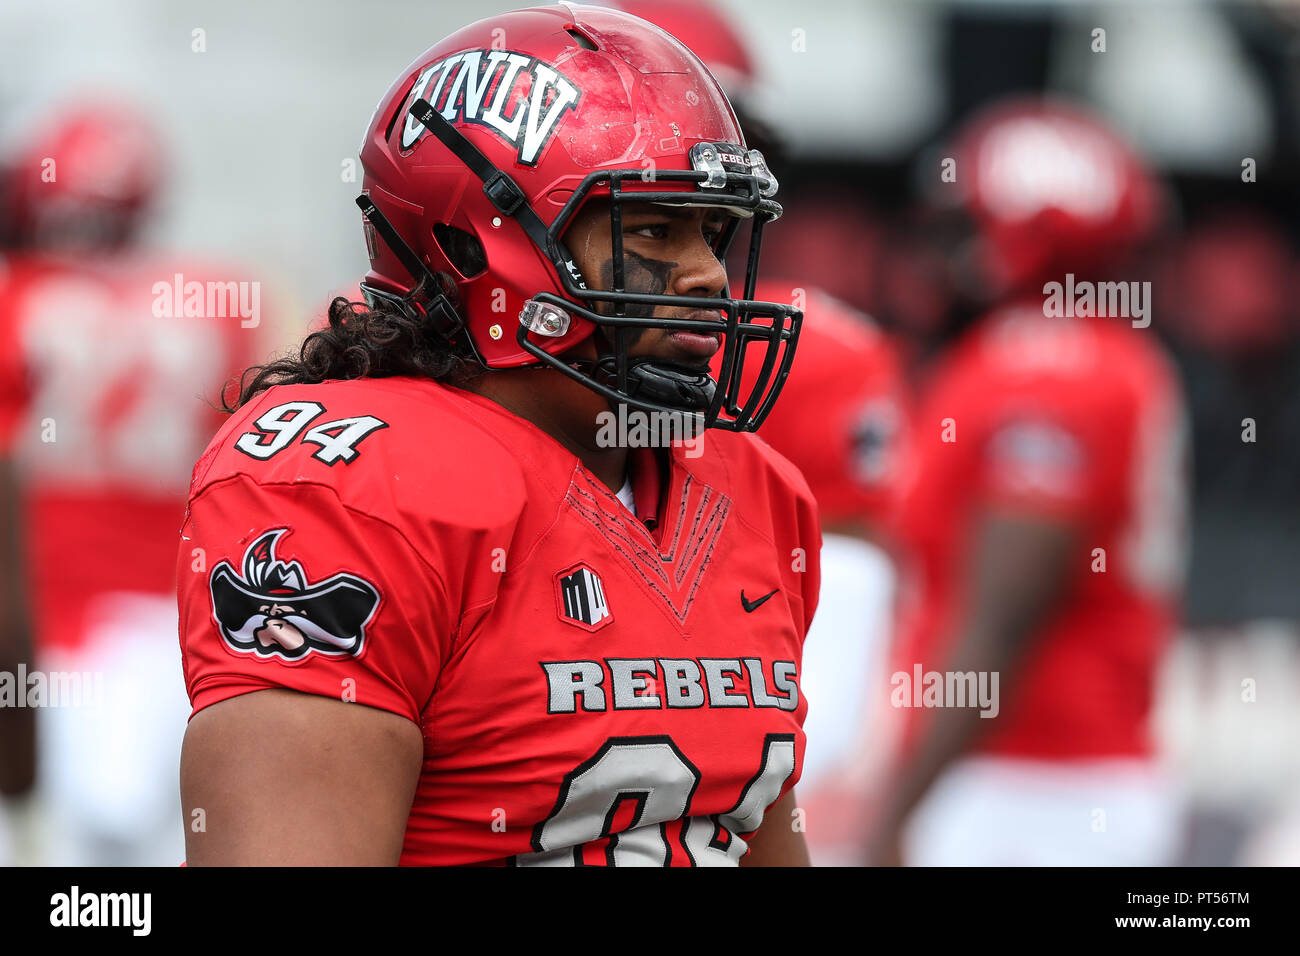 best service 23160 522ff Las Vegas, NV, USA. 6th Oct, 2018. UNLV Rebels defensive ...